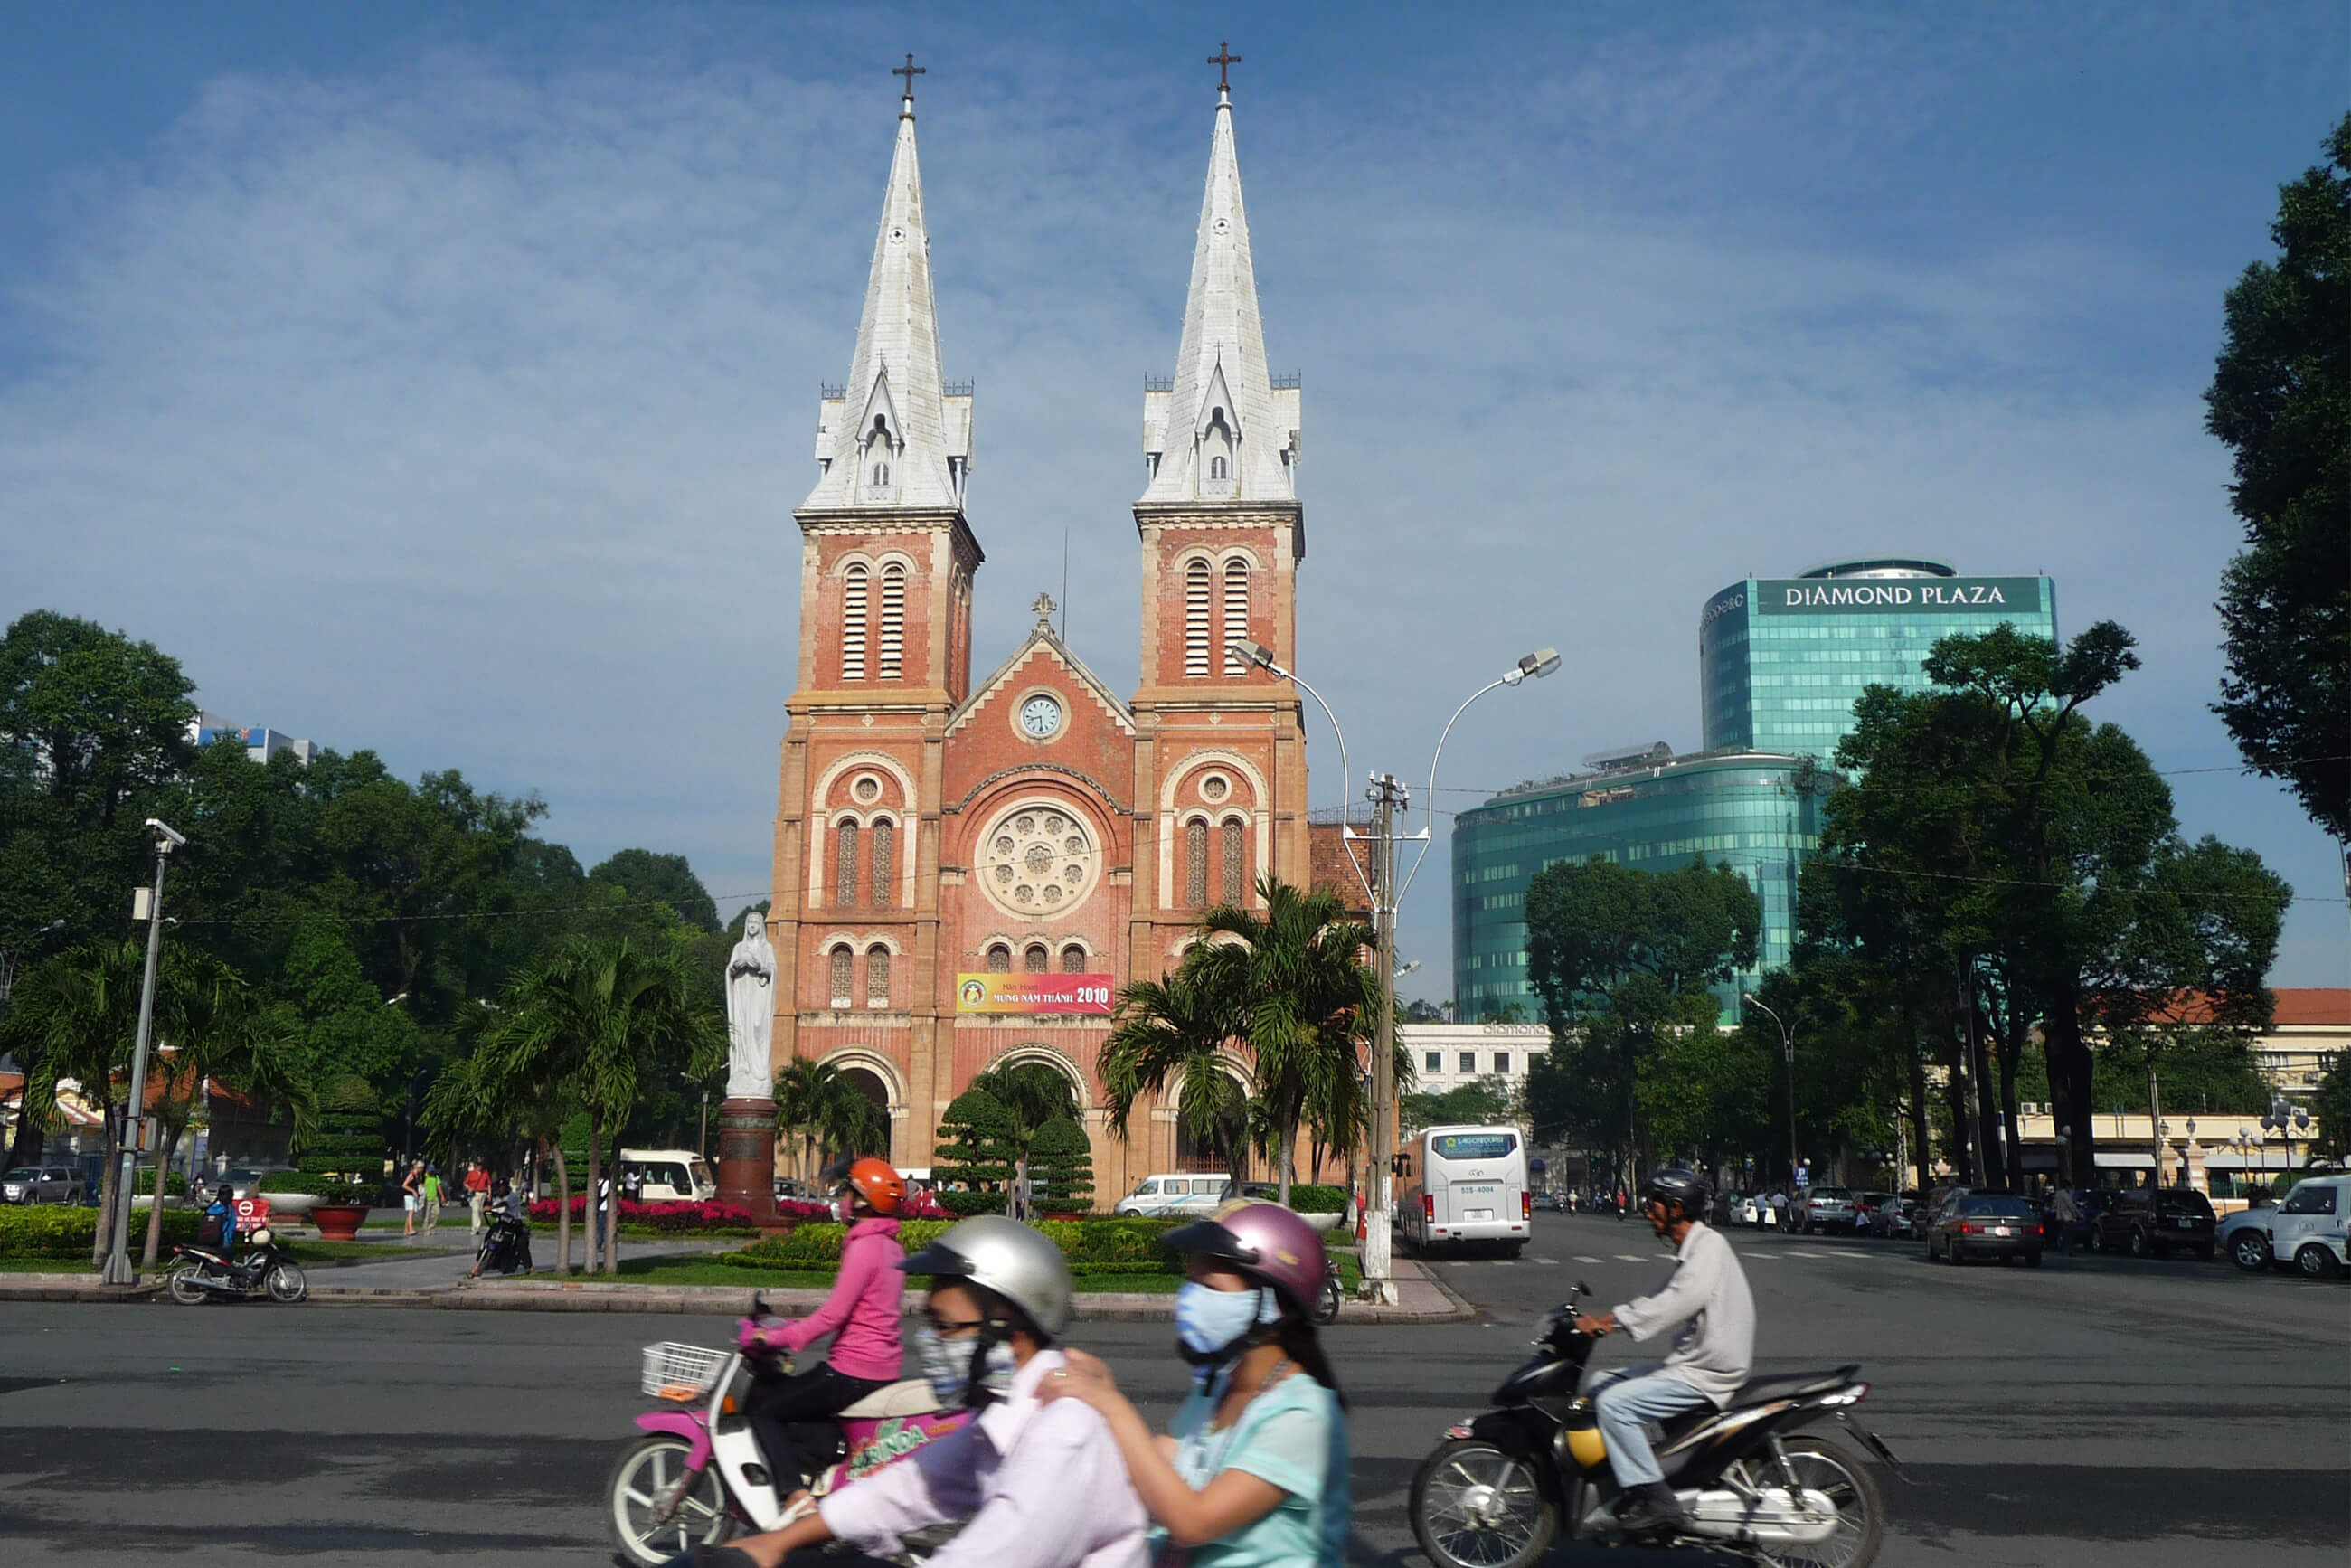 https://bubo.sk/uploads/galleries/7382/archiv_vietnam_saigon_p1120554.jpg